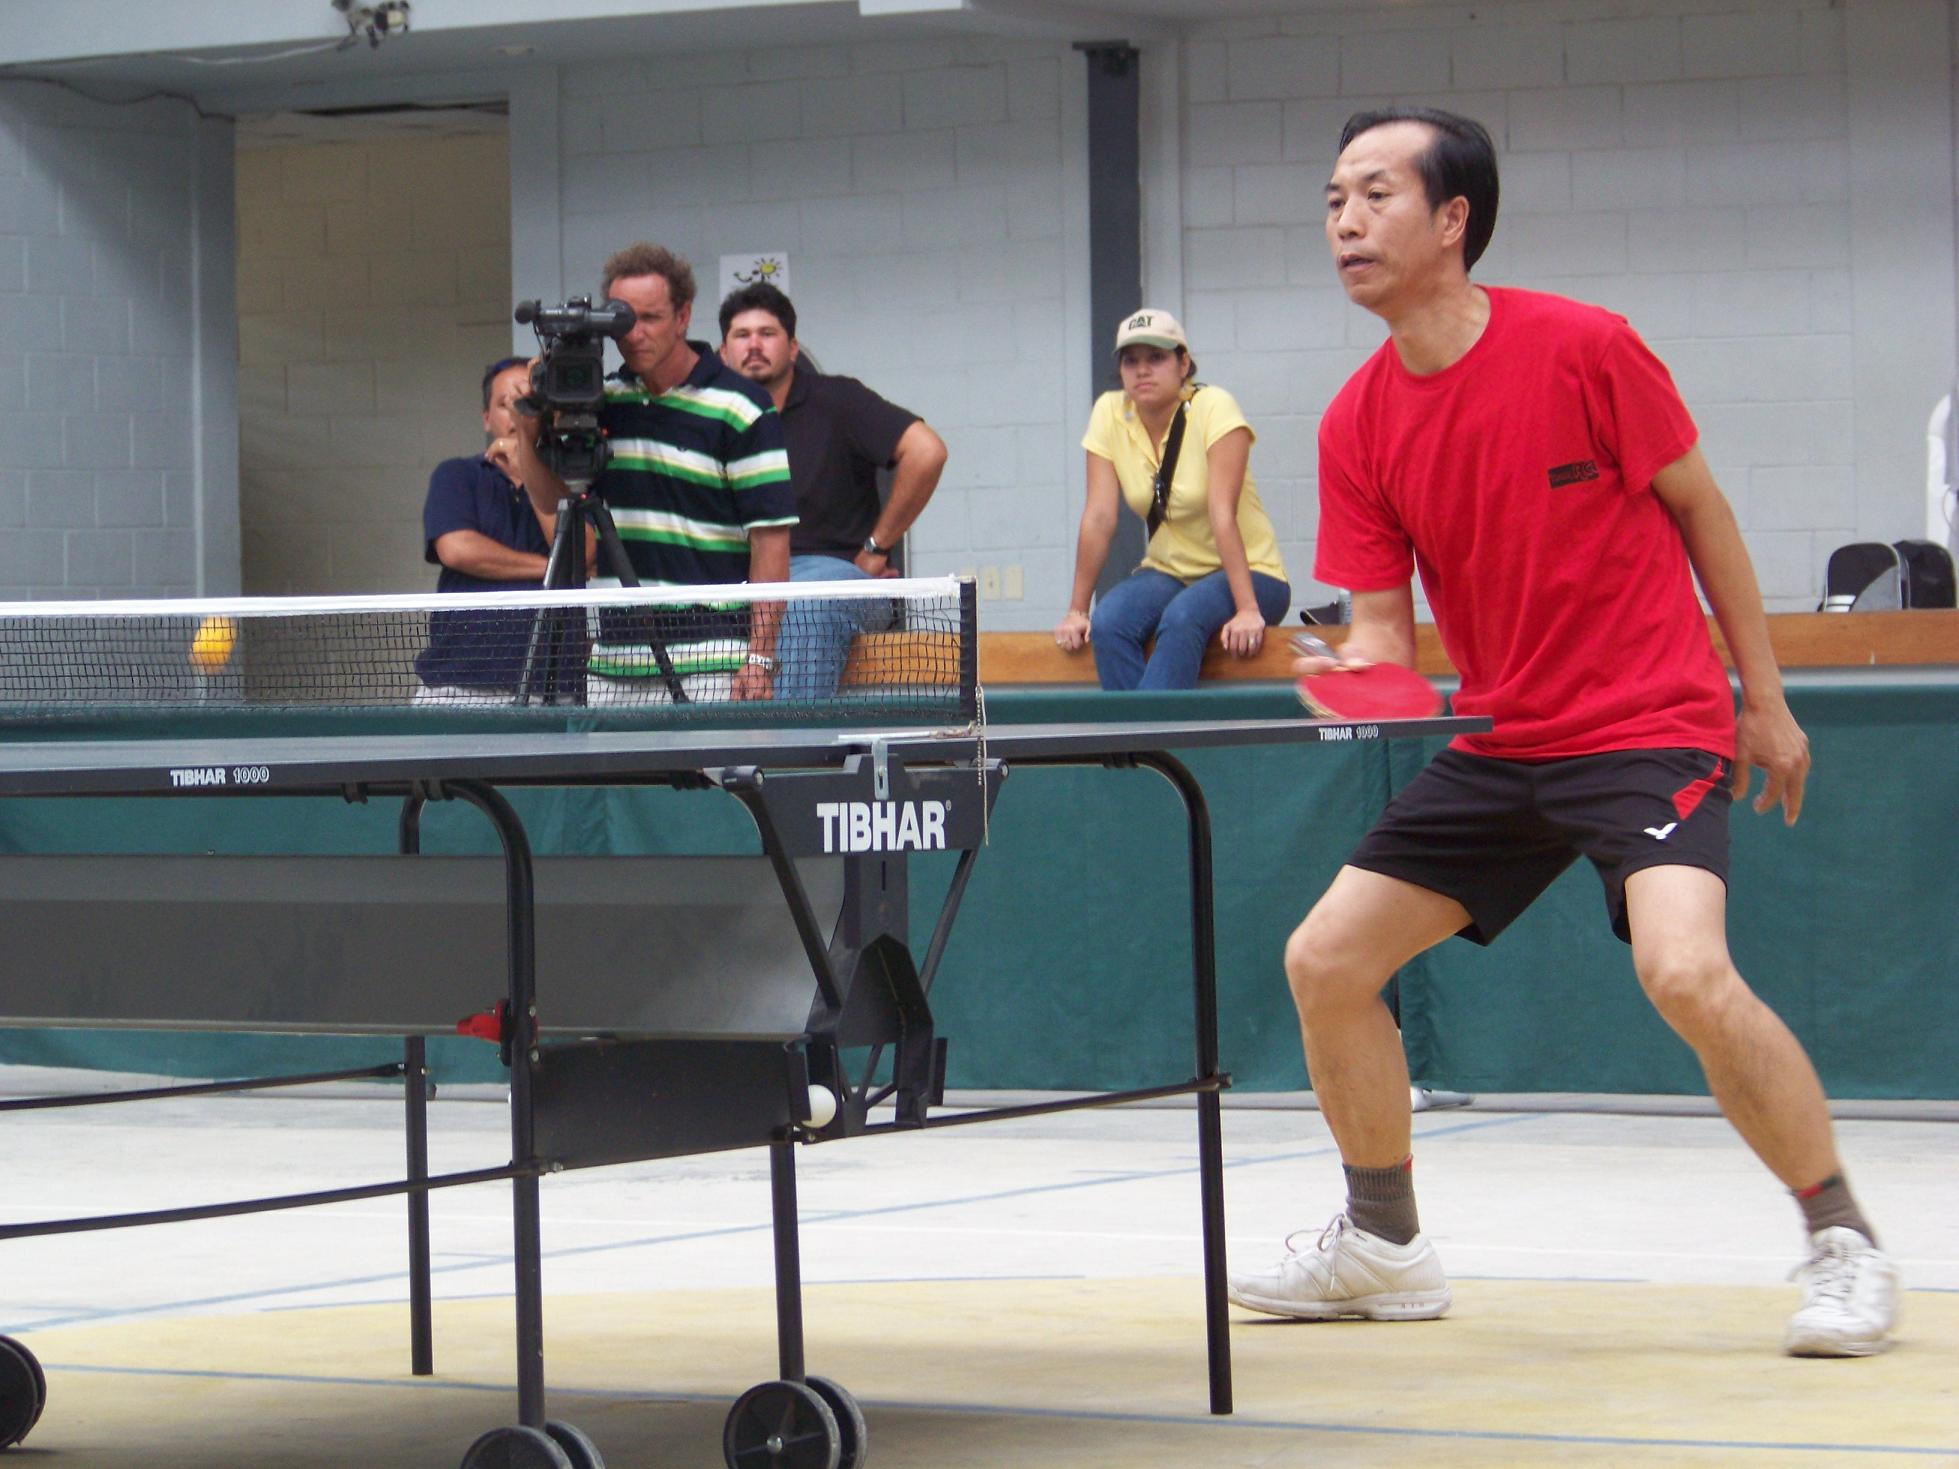 Carlos Cui Team ACE top ranking player